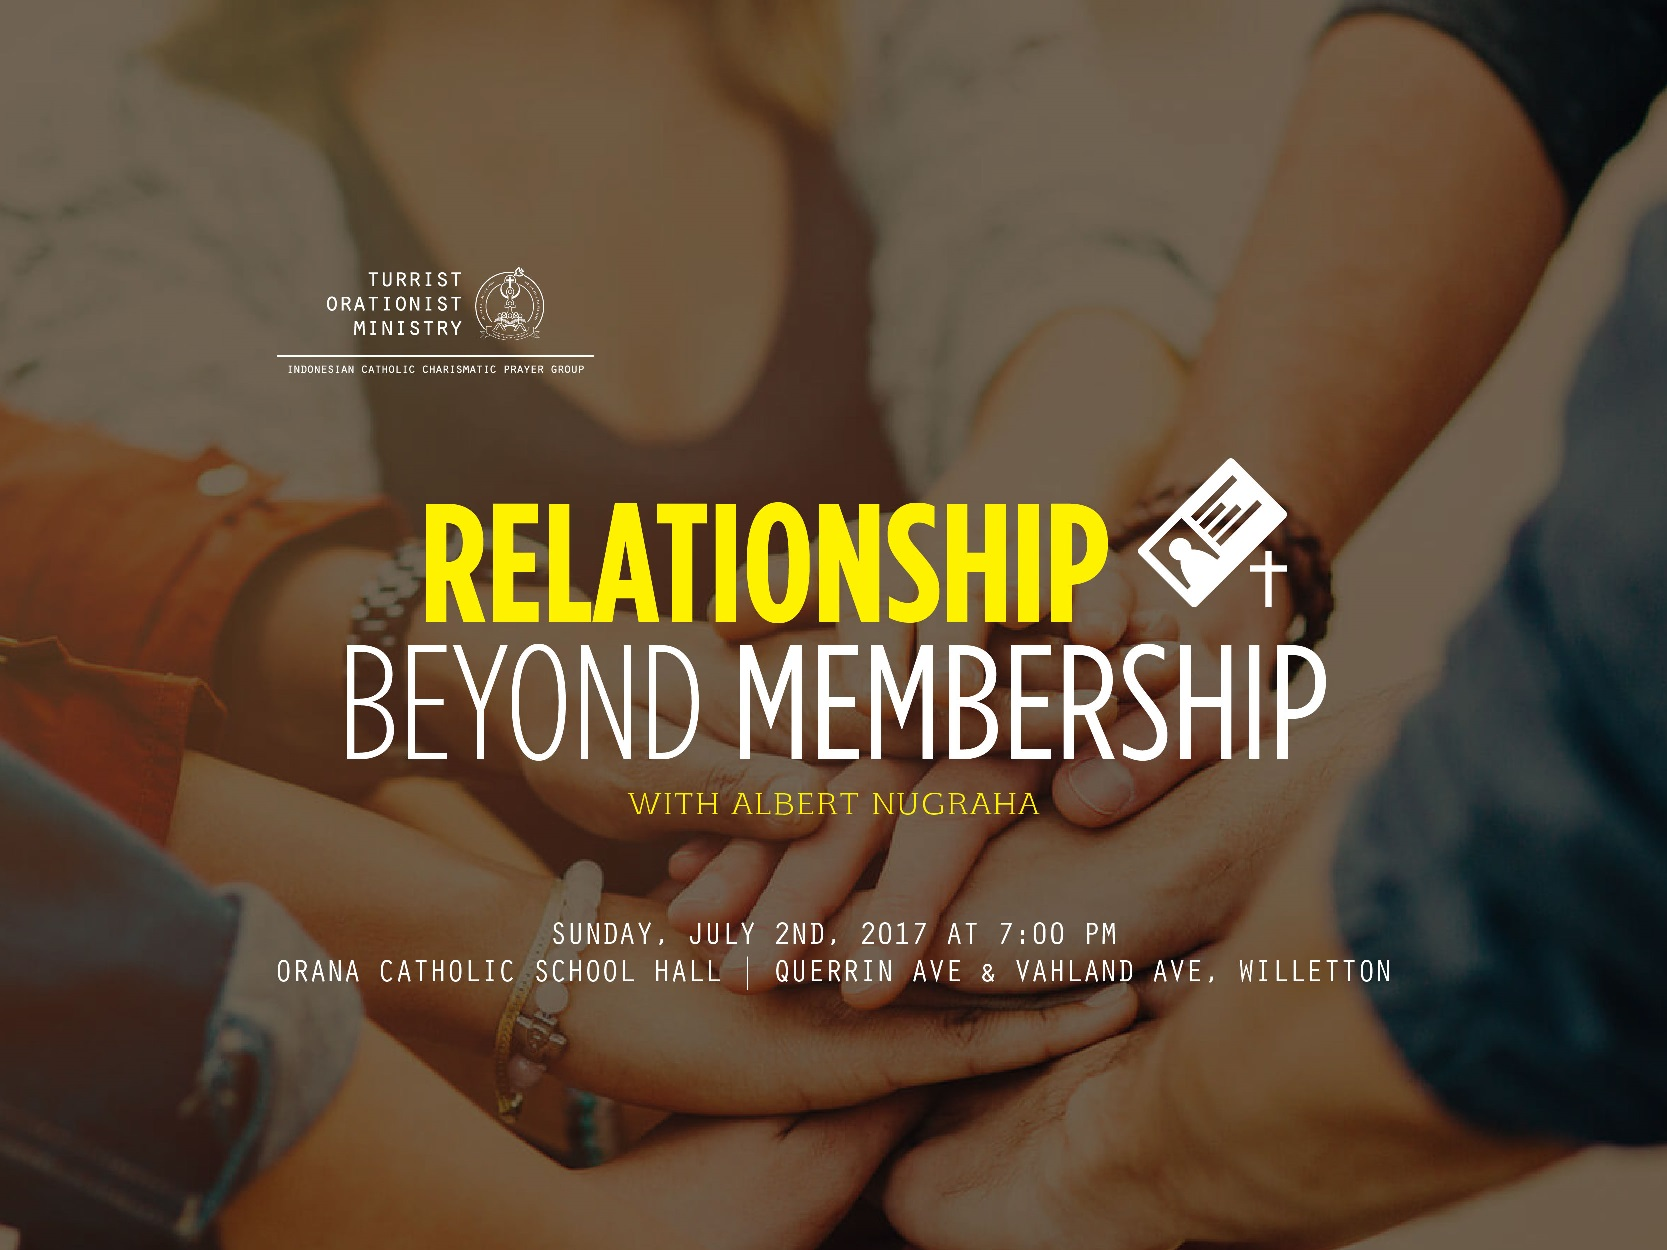 Relationship Beyond Membership